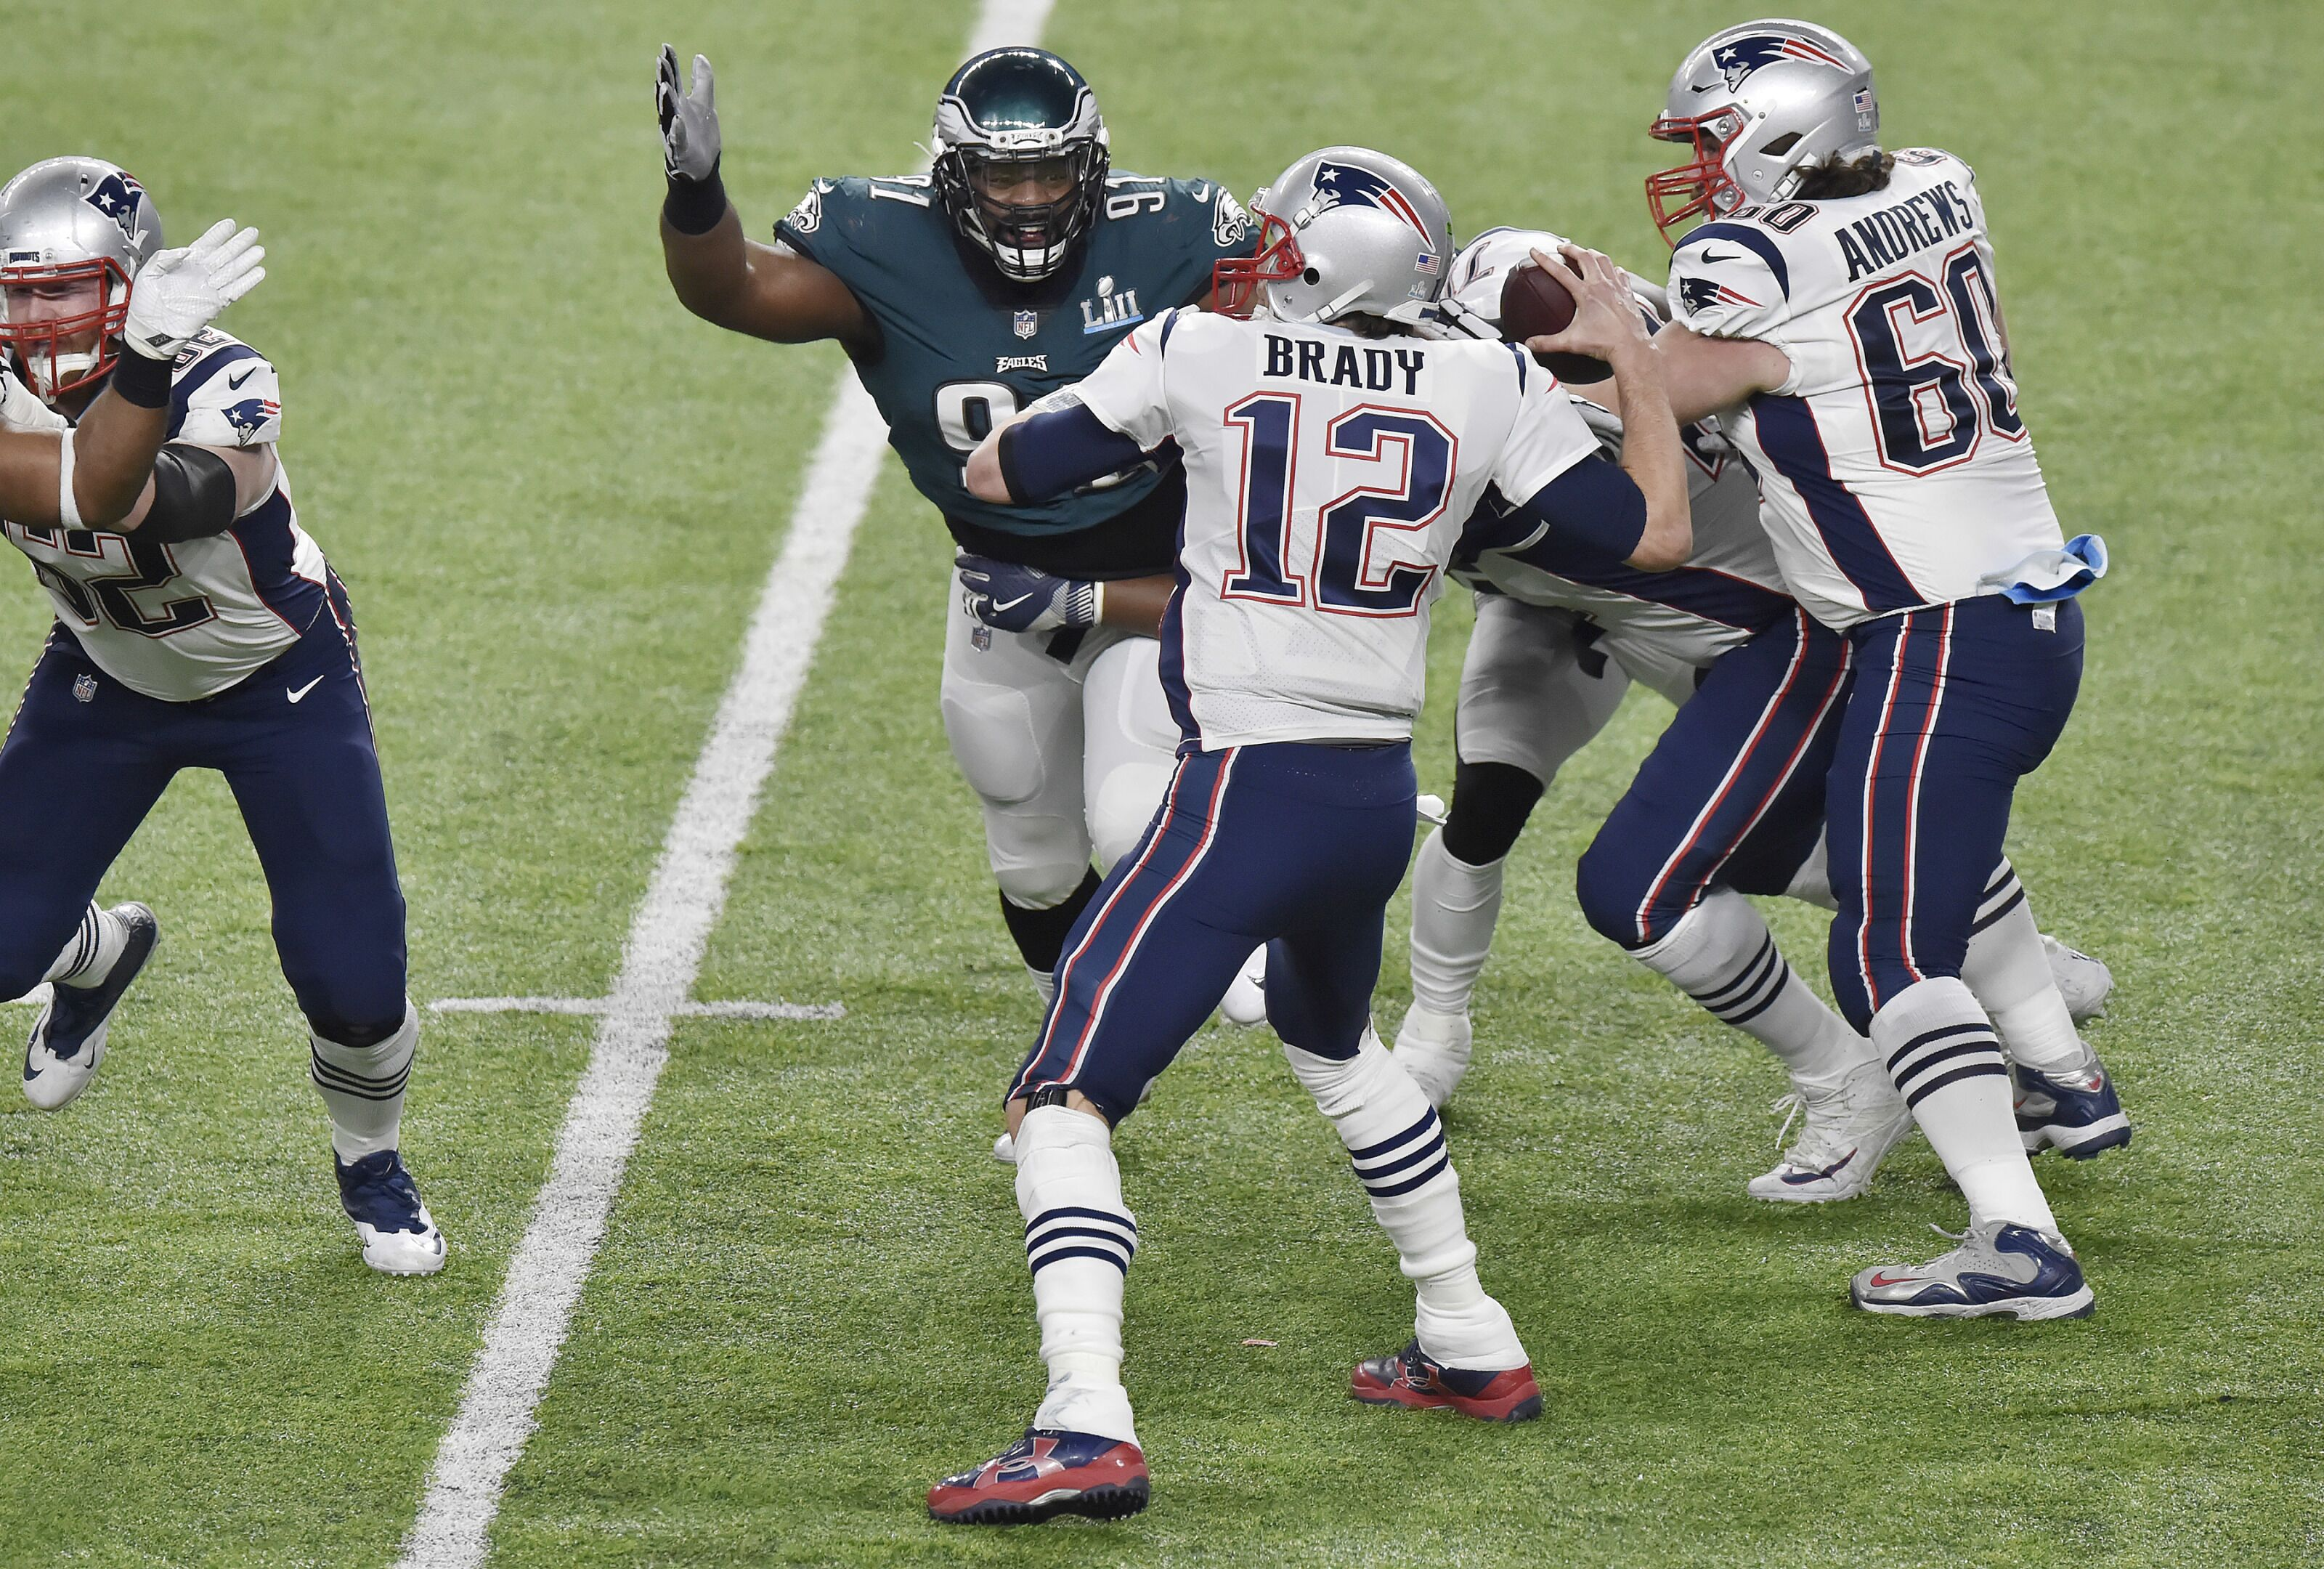 Patriots, Eagles have best Super Bowl 53 odds